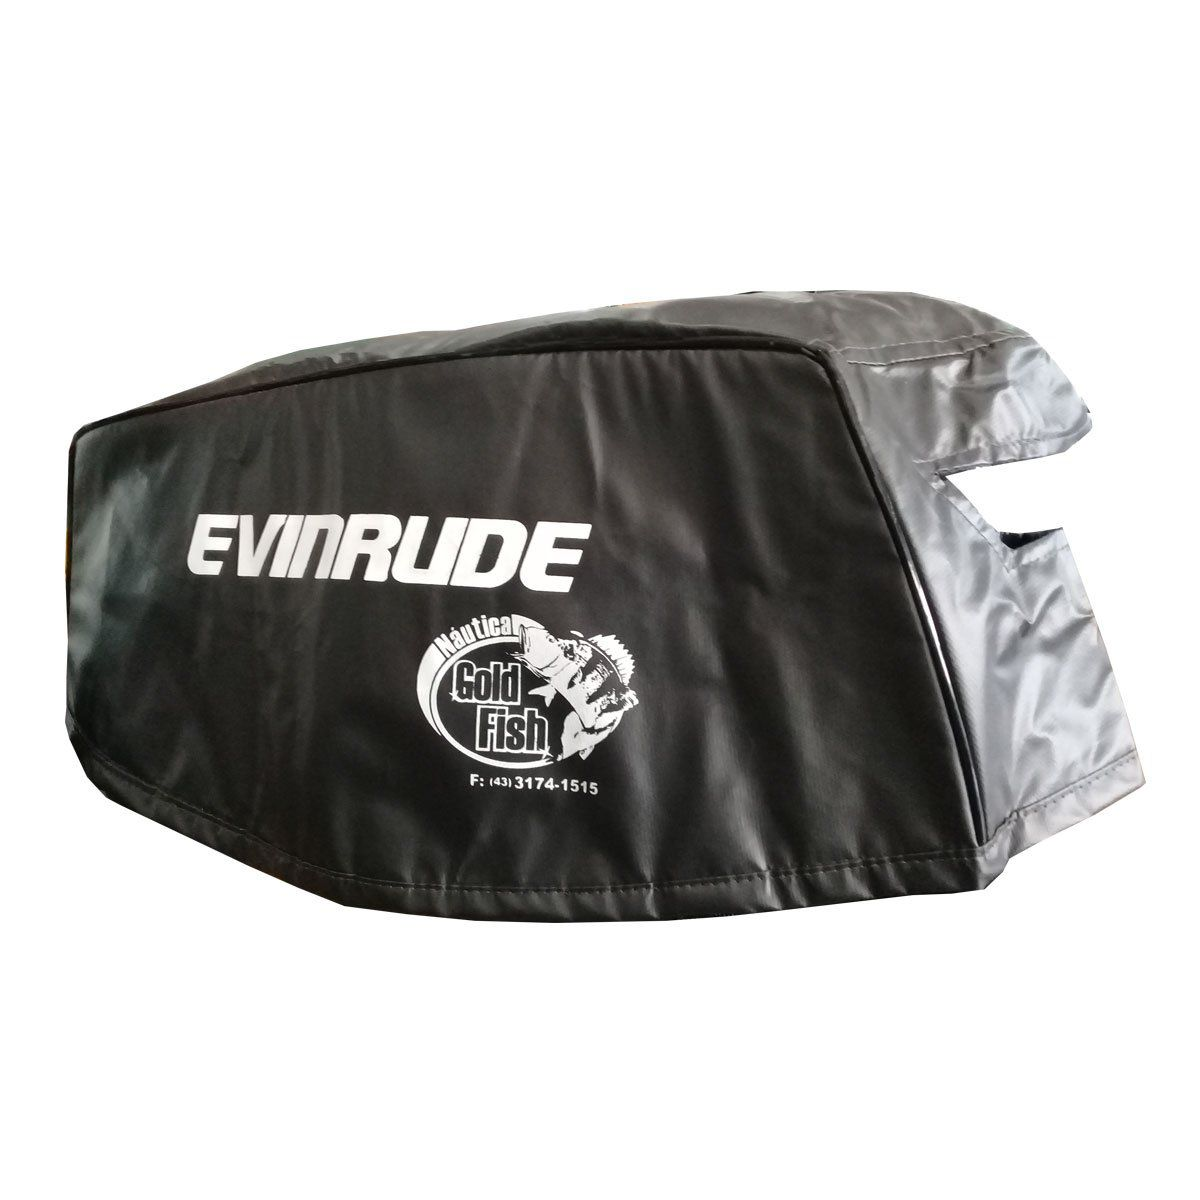 Capa do Capô Evinrude 25 HP ETEC